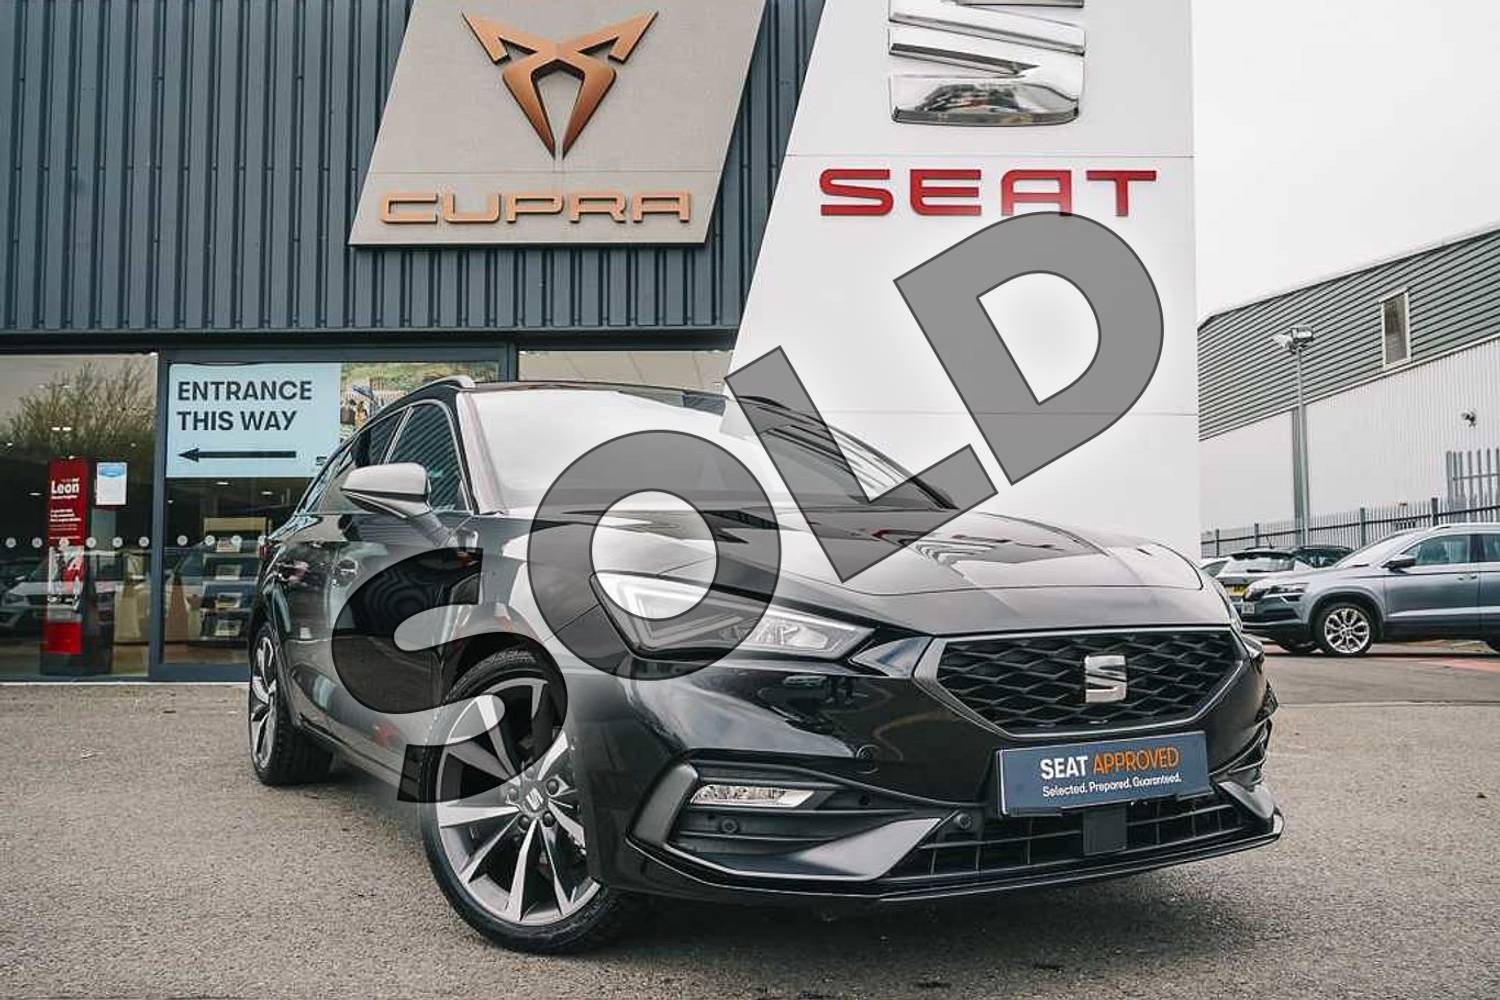 2021 SEAT Leon Estate 1.5 eTSI 150 FR Sport 5dr DSG in Black at Listers SEAT Coventry